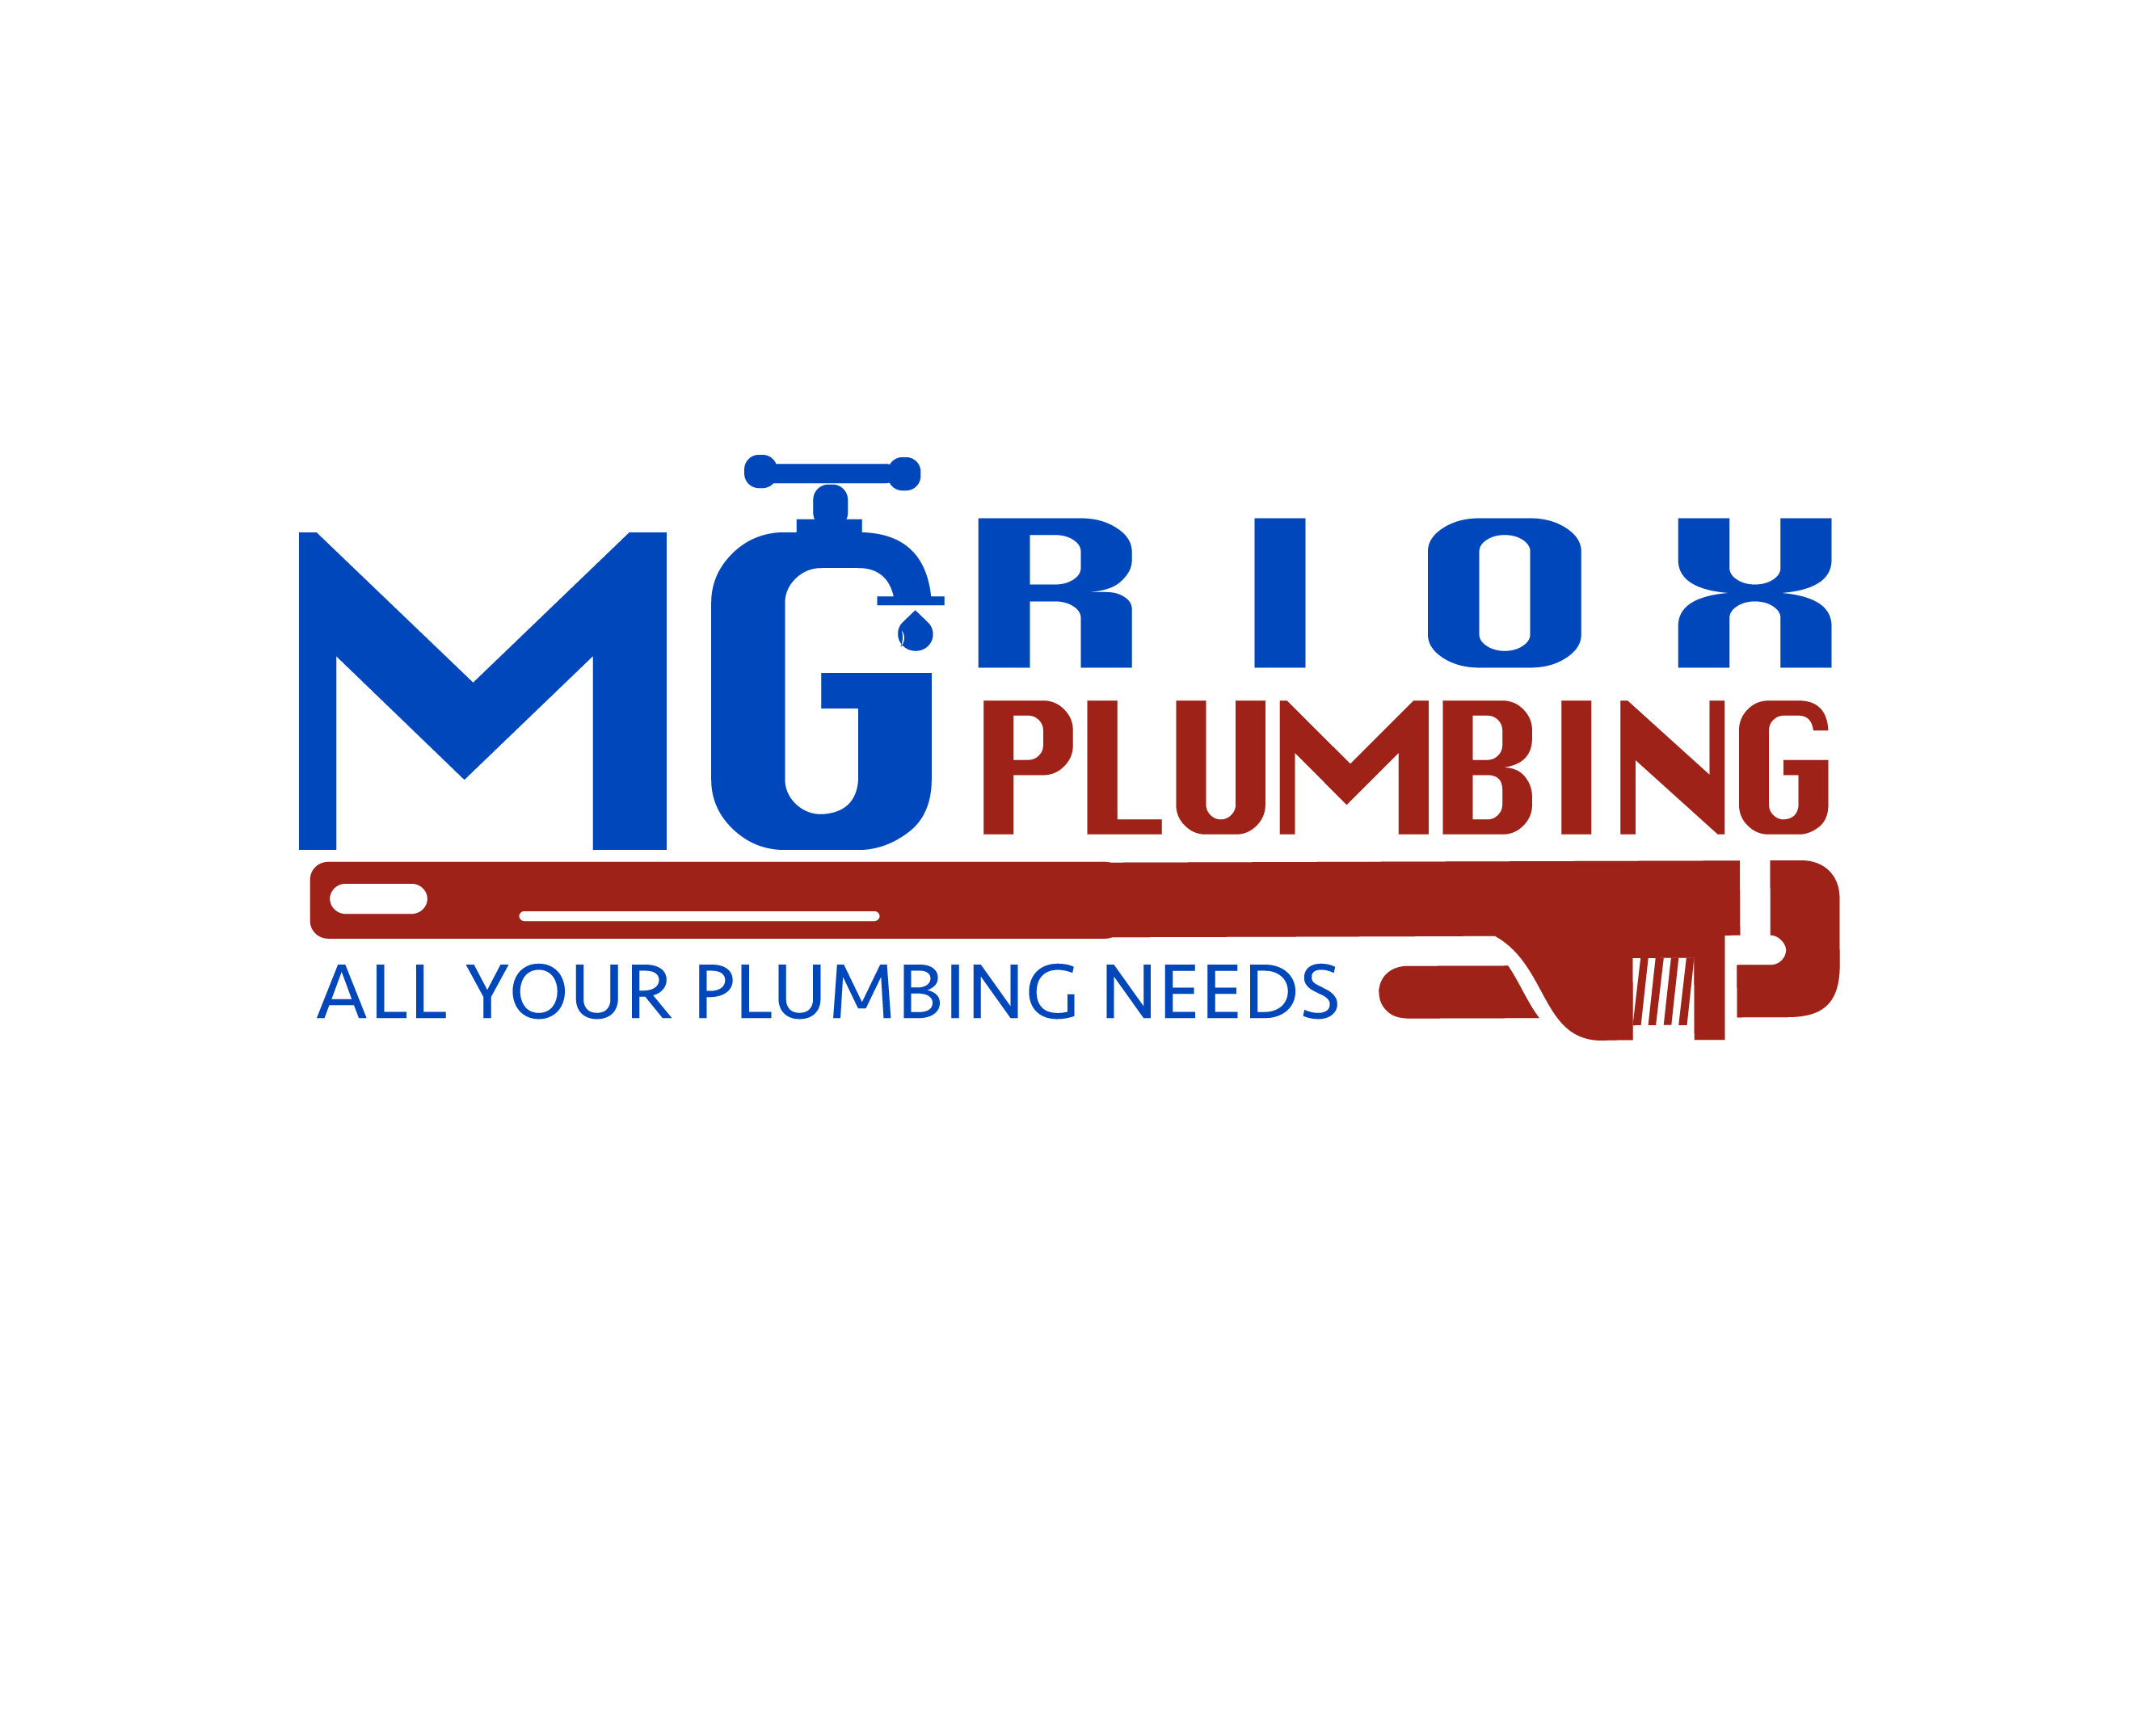 MG RIOX PLUMBLING LLC